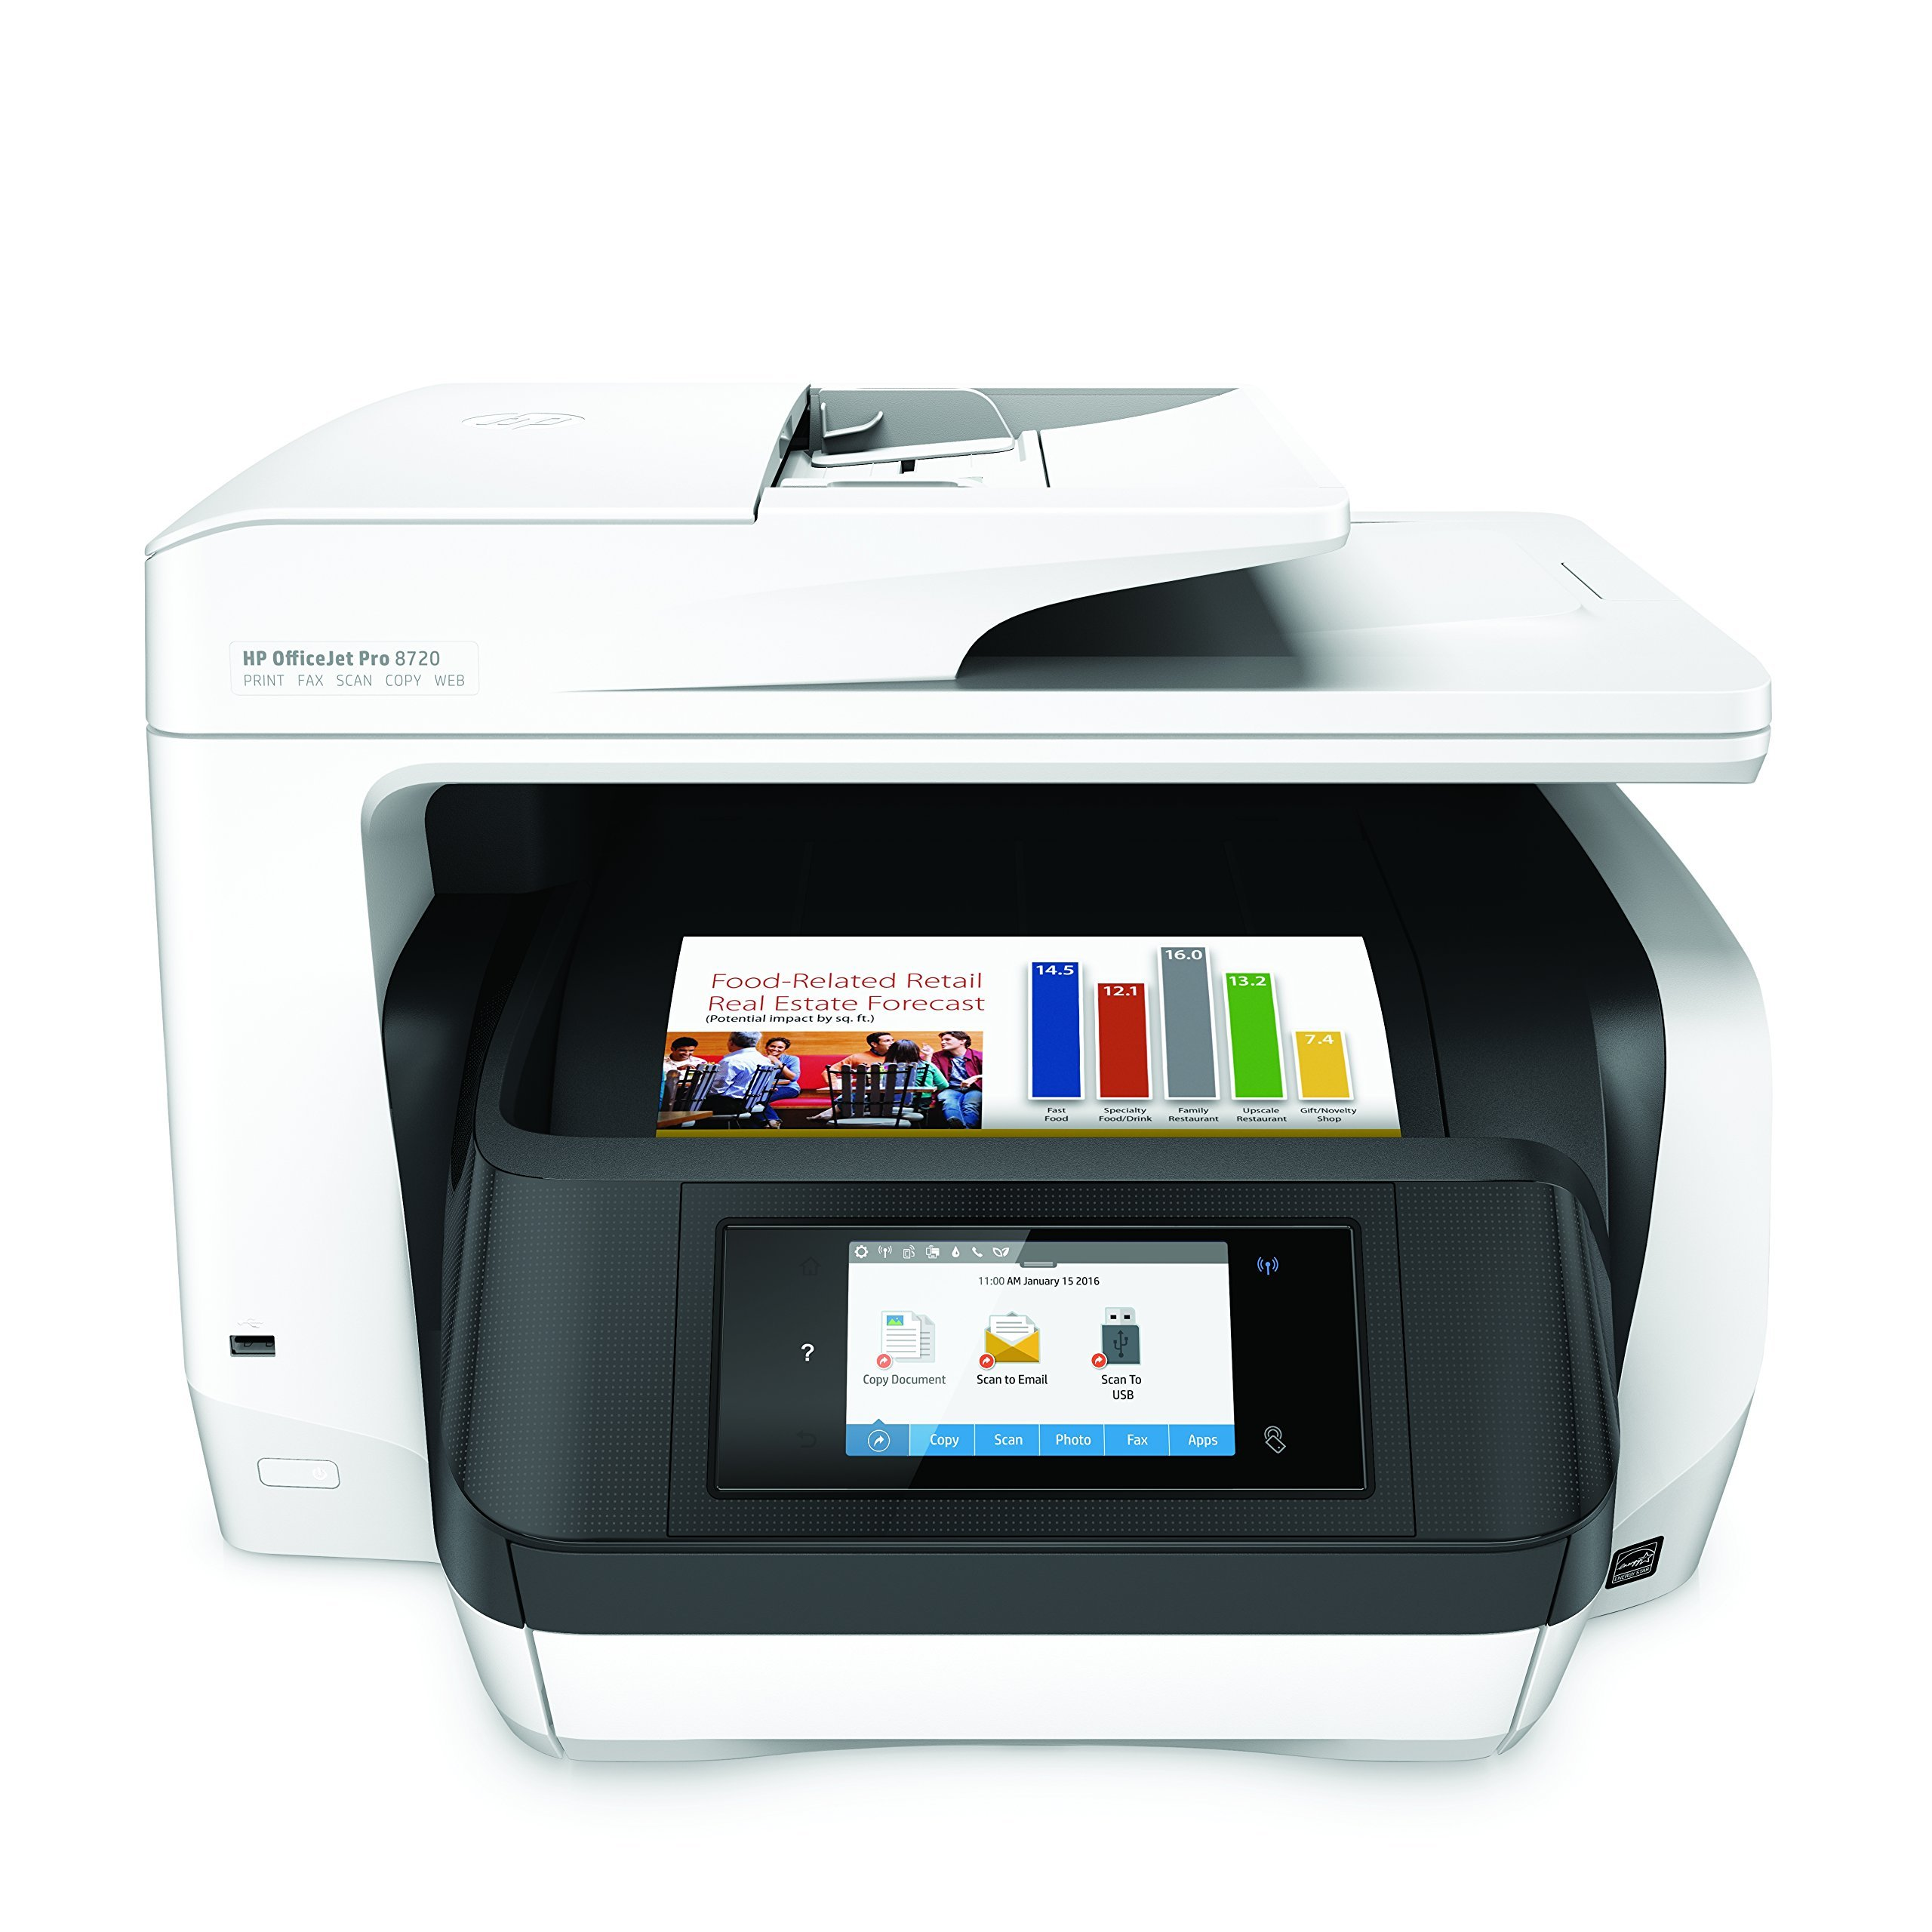 HP OfficeJet Pro 8720 All-in-One Wireless Printer with Mobile Printing, HP Instant Ink & Amazon Dash Replenishment ready - White (M9L75A) (Renewed) by HP (Image #1)